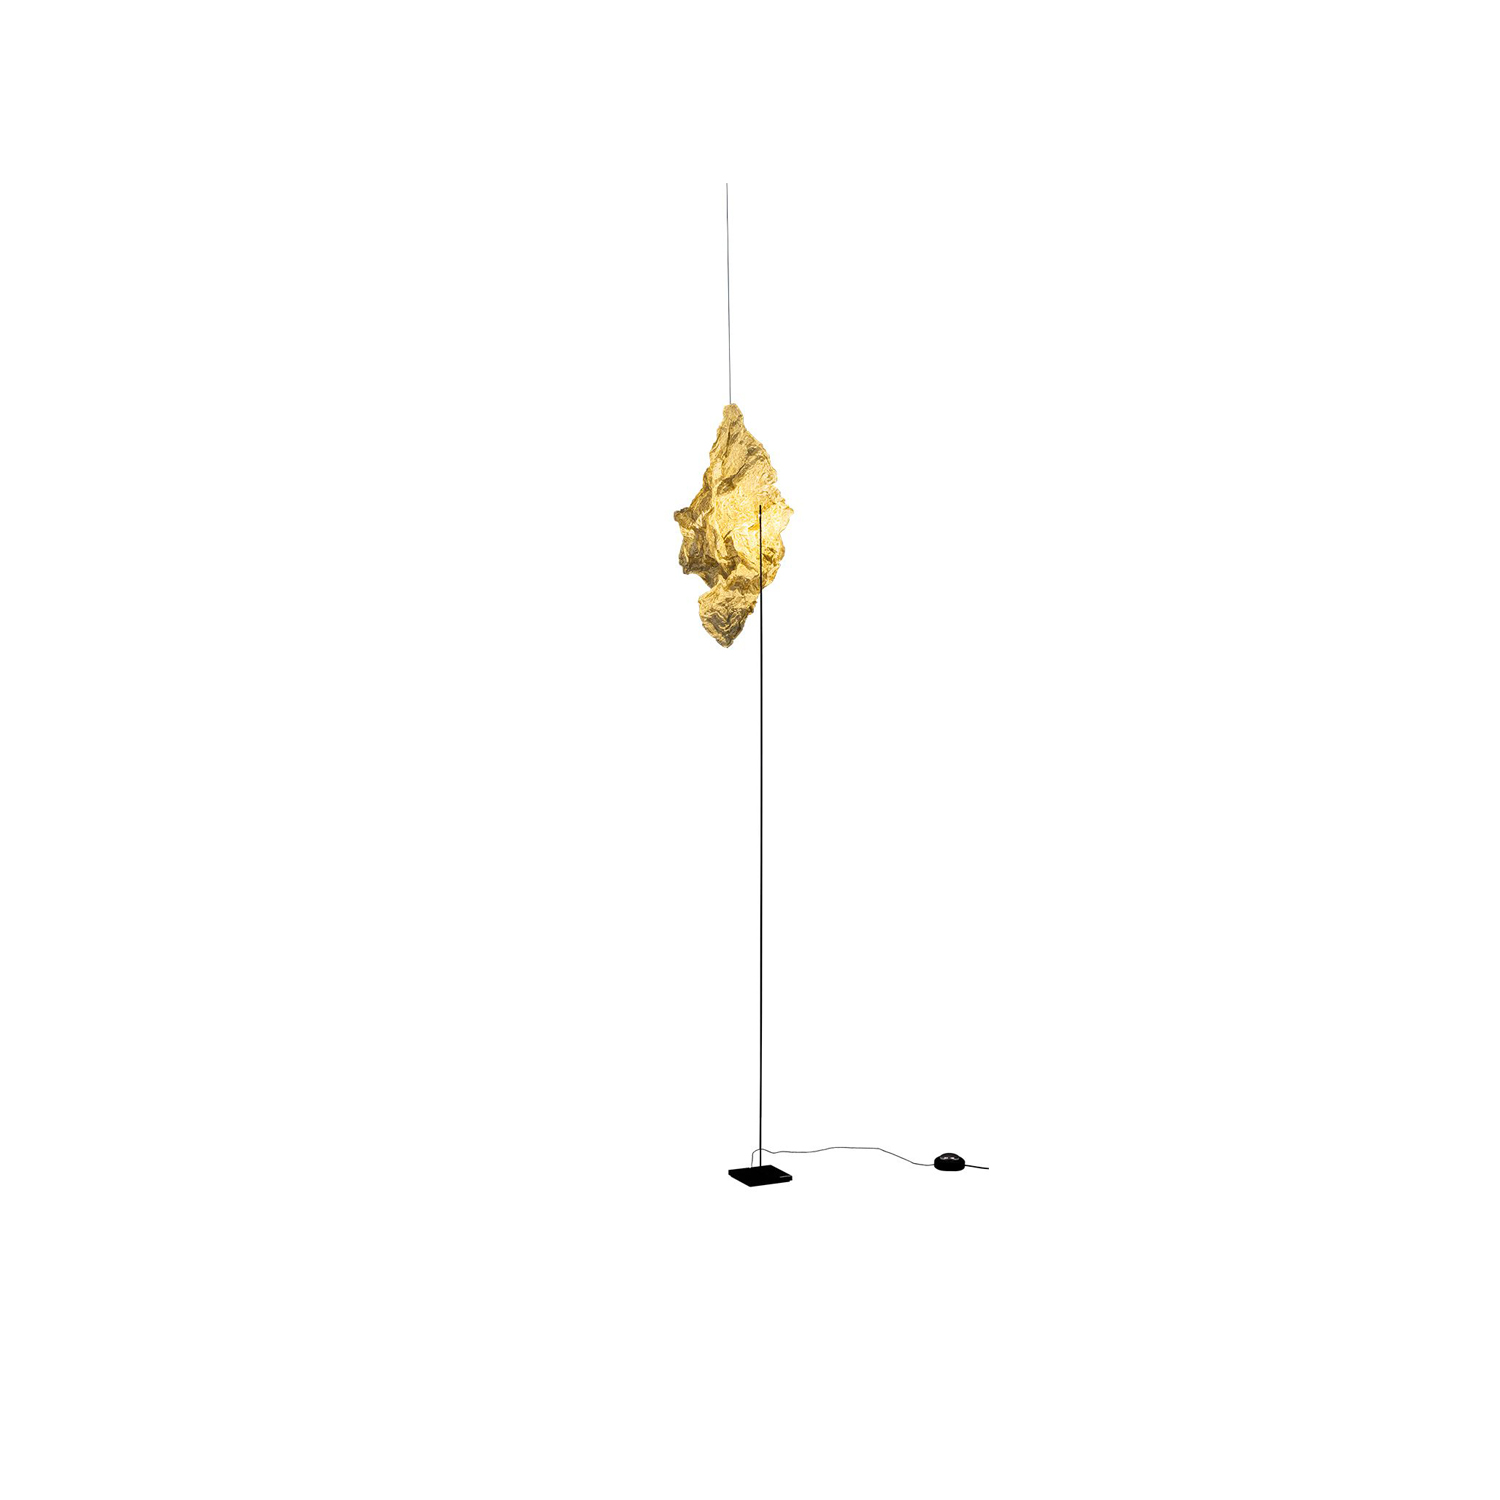 Shadow Floor Lamp - Shadow is a piece of metal cloth suspended in space and illuminated by a LED. Darkness surrounds the shadow of the cloth. Sheer simplicity. | Matter of Stuff